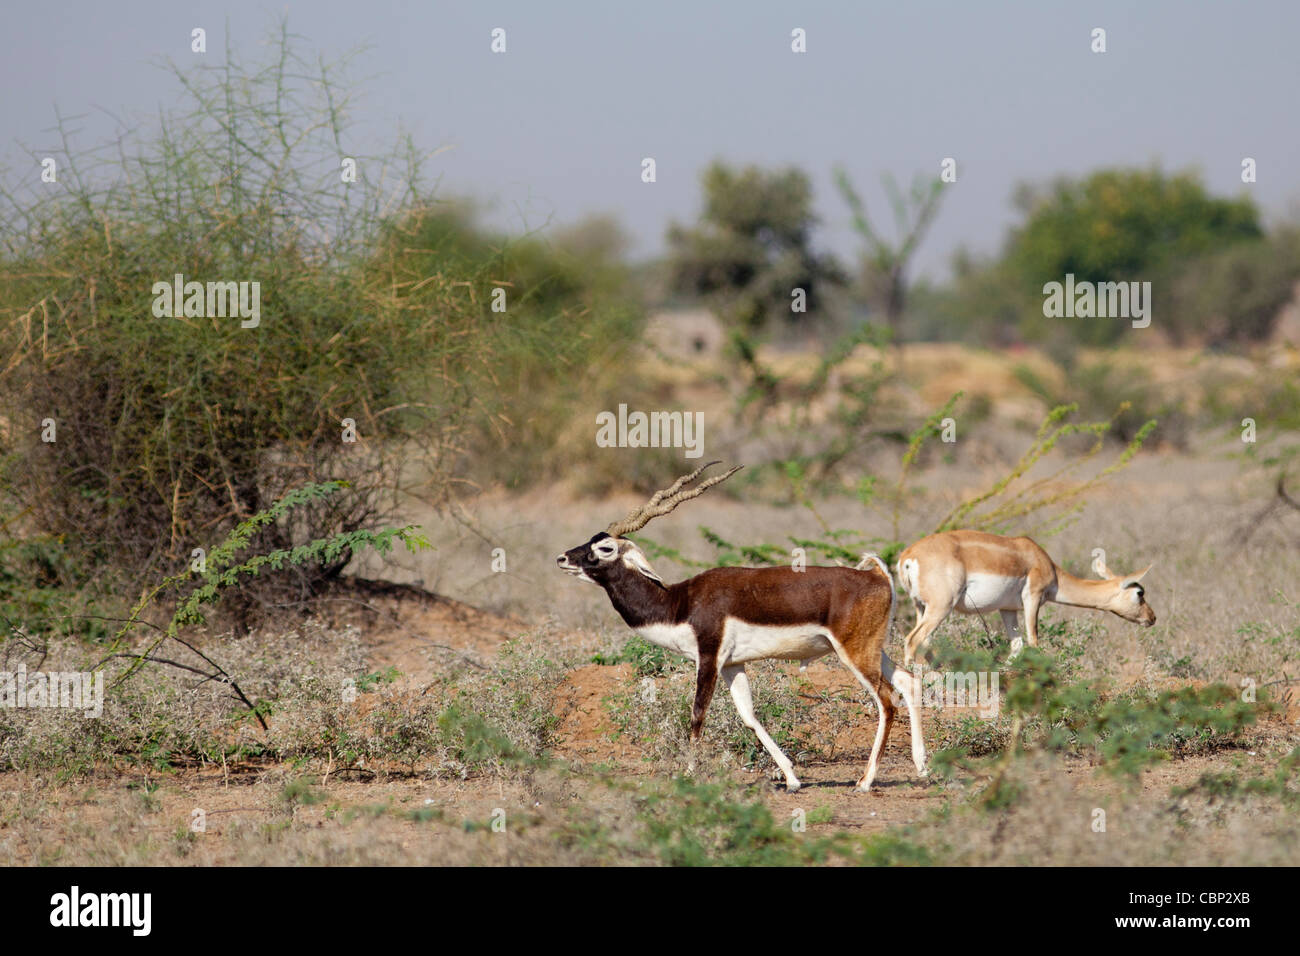 Blackbuck male antelope, Antilope cervicapra, with female hind near Rohet in Rajasthan, North West India - Stock Image